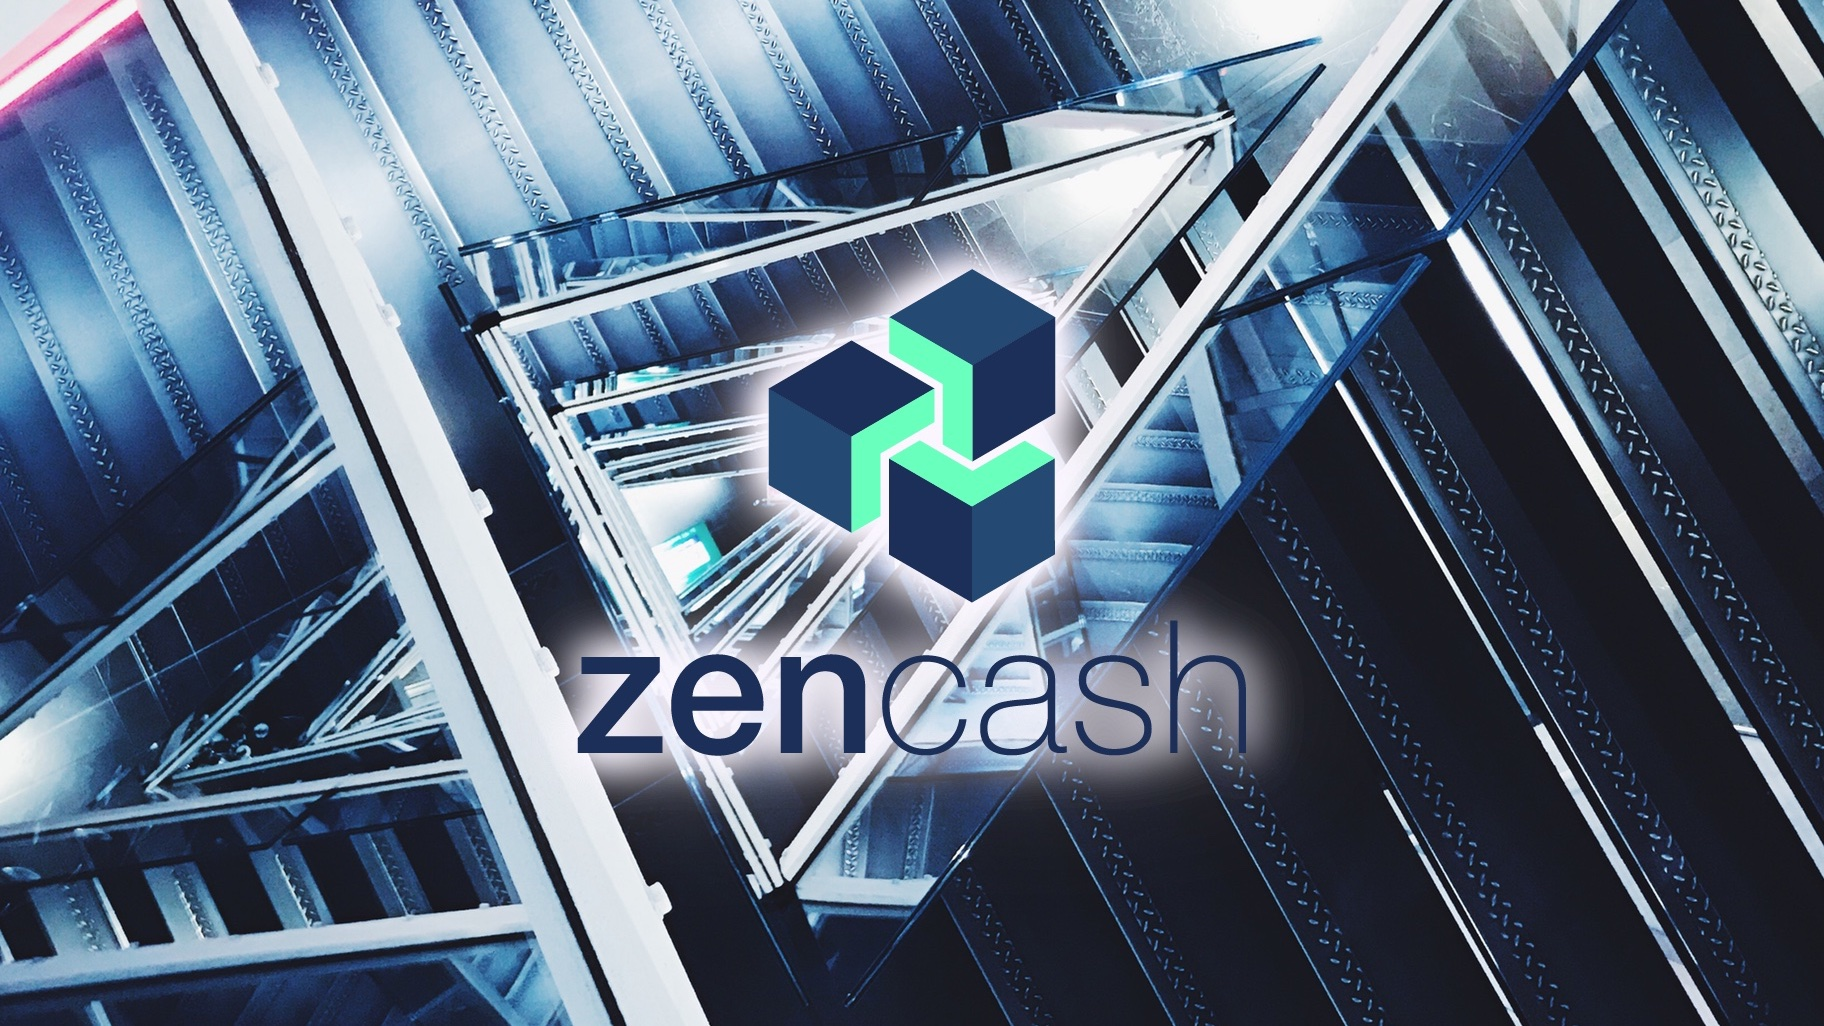 ZenCash to Enable ATM Transactions through Trilliant Soon